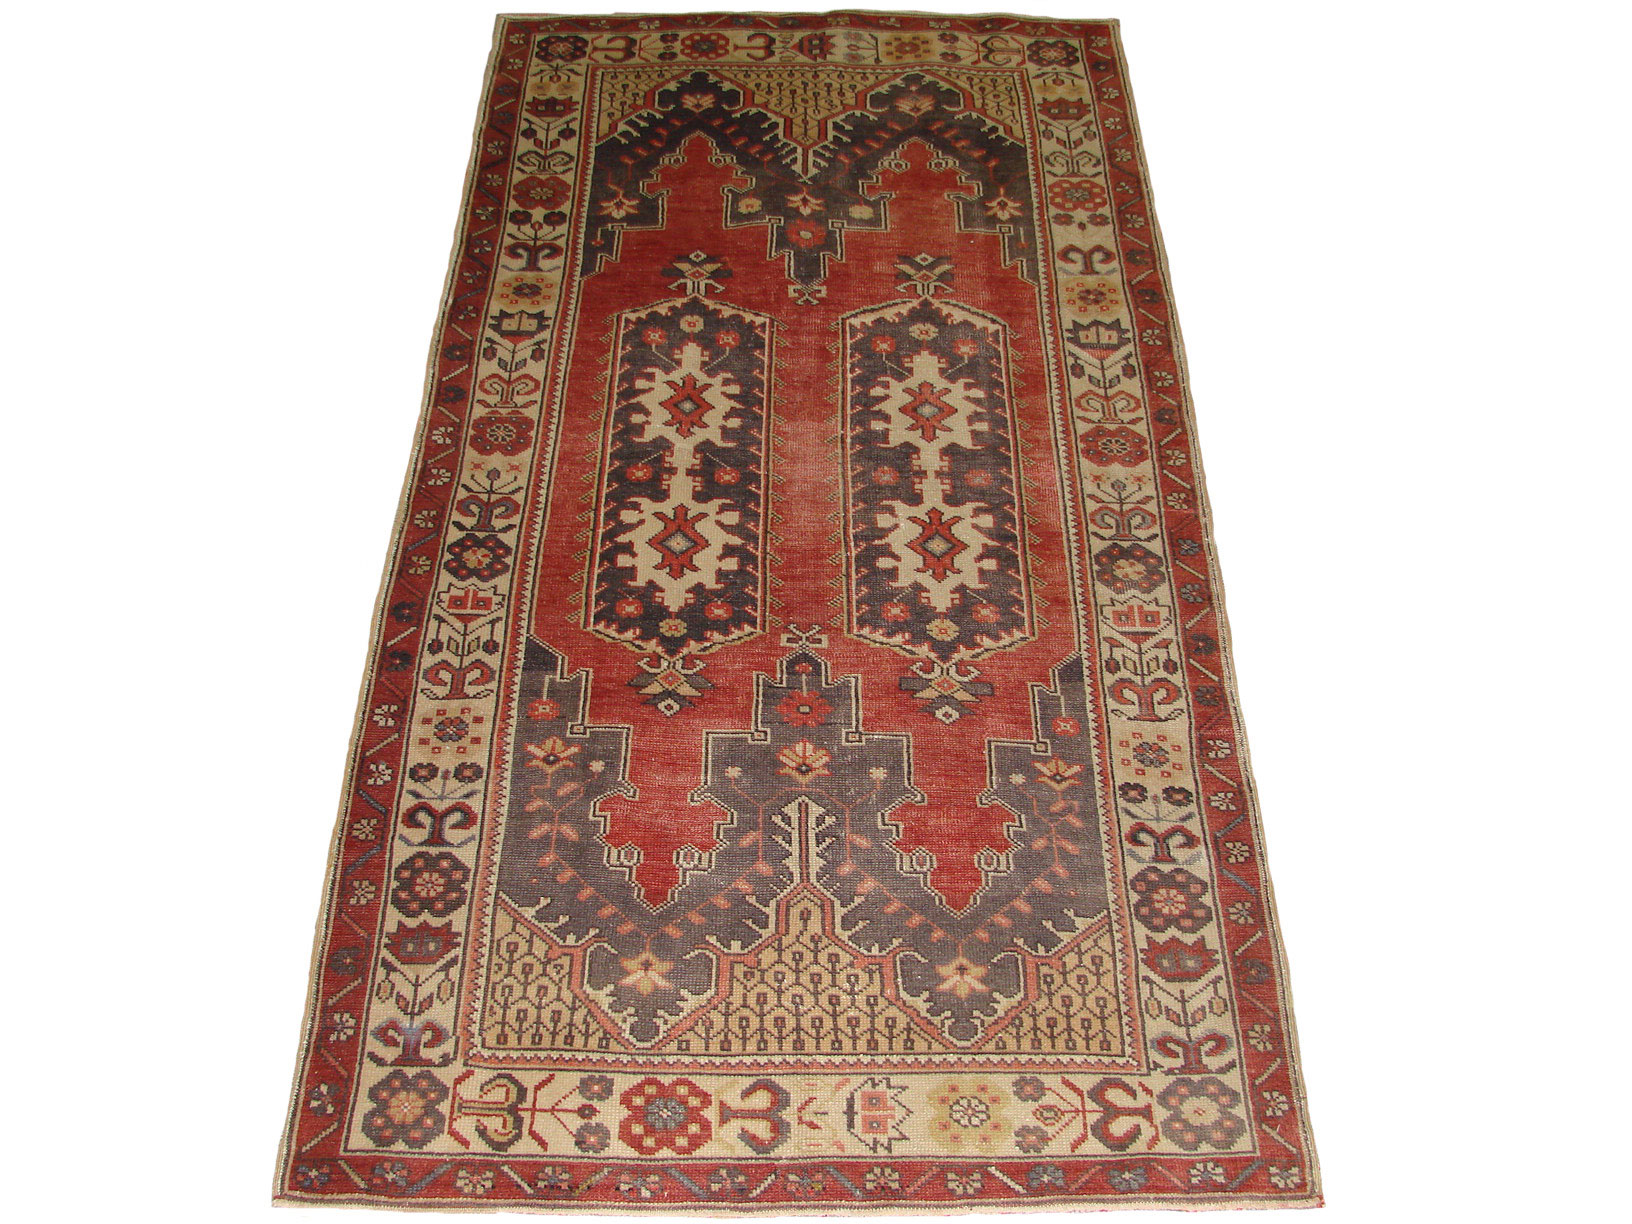 4x6 Oushak Hand Knotted Wool Area Rug - MR18249